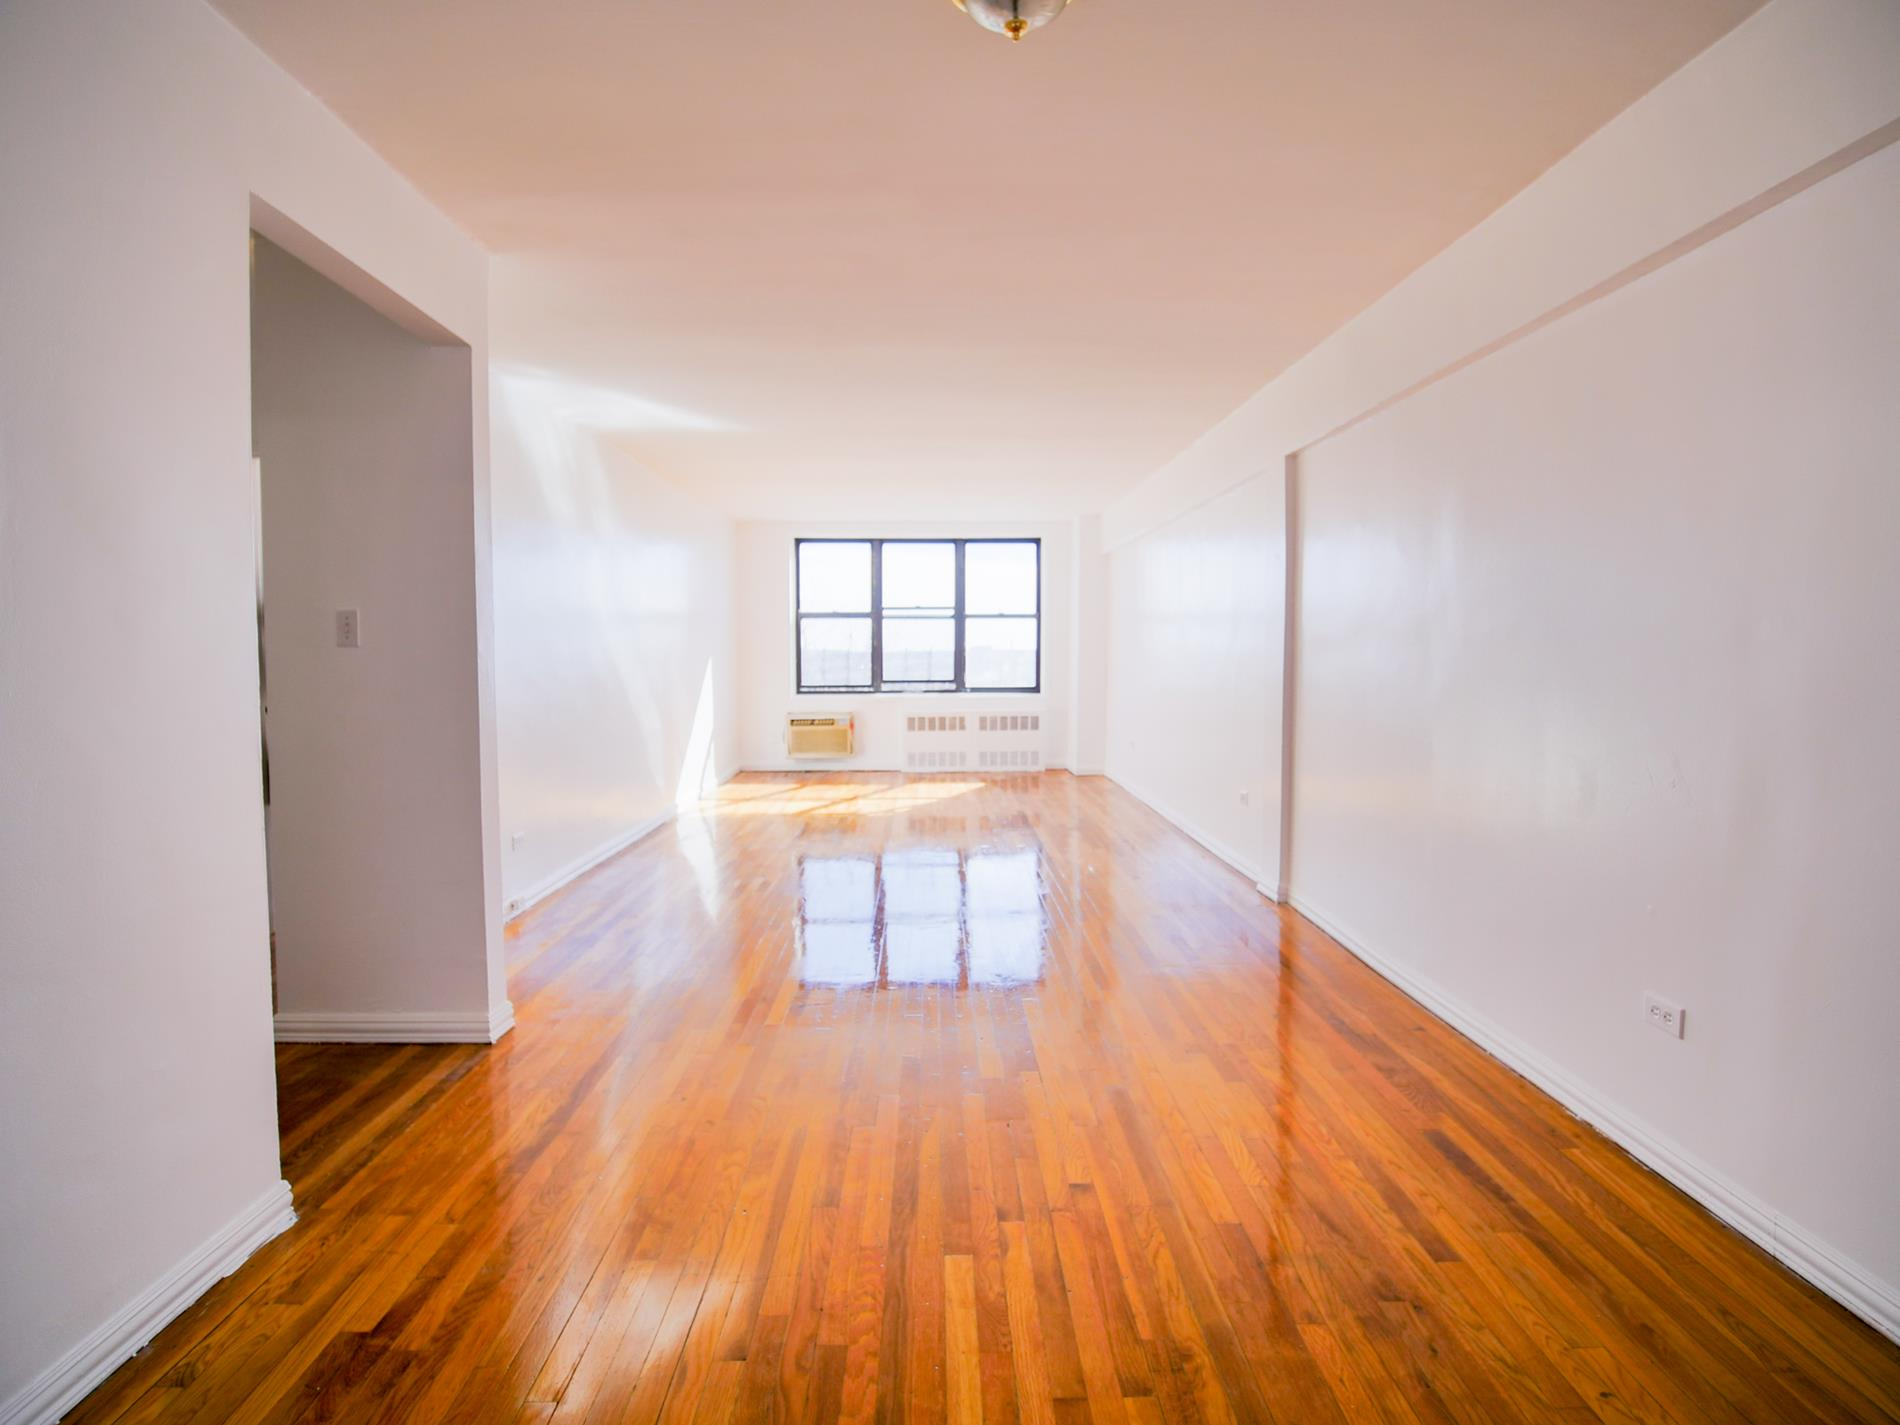 Apartment for sale at 1200 East 53rd Street, Apt 7-J